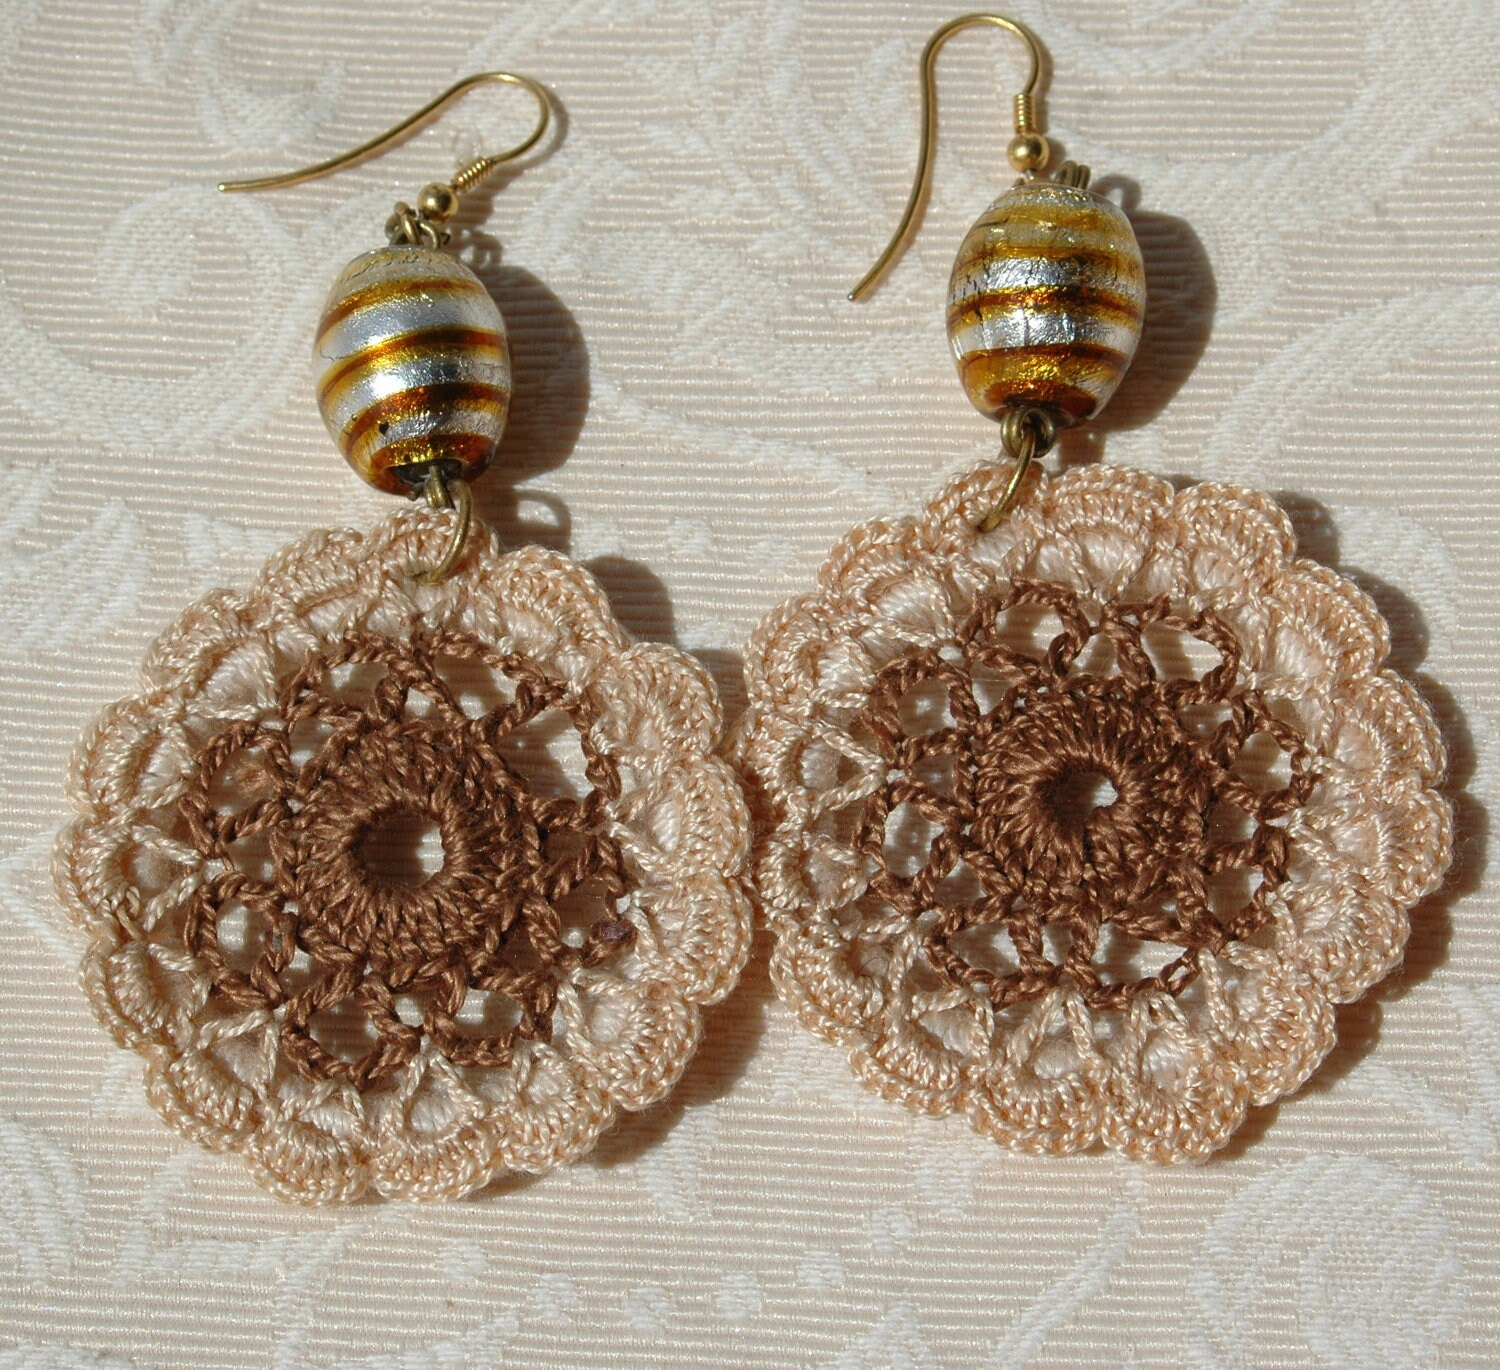 Crochet Earrings : Unavailable Listing on Etsy